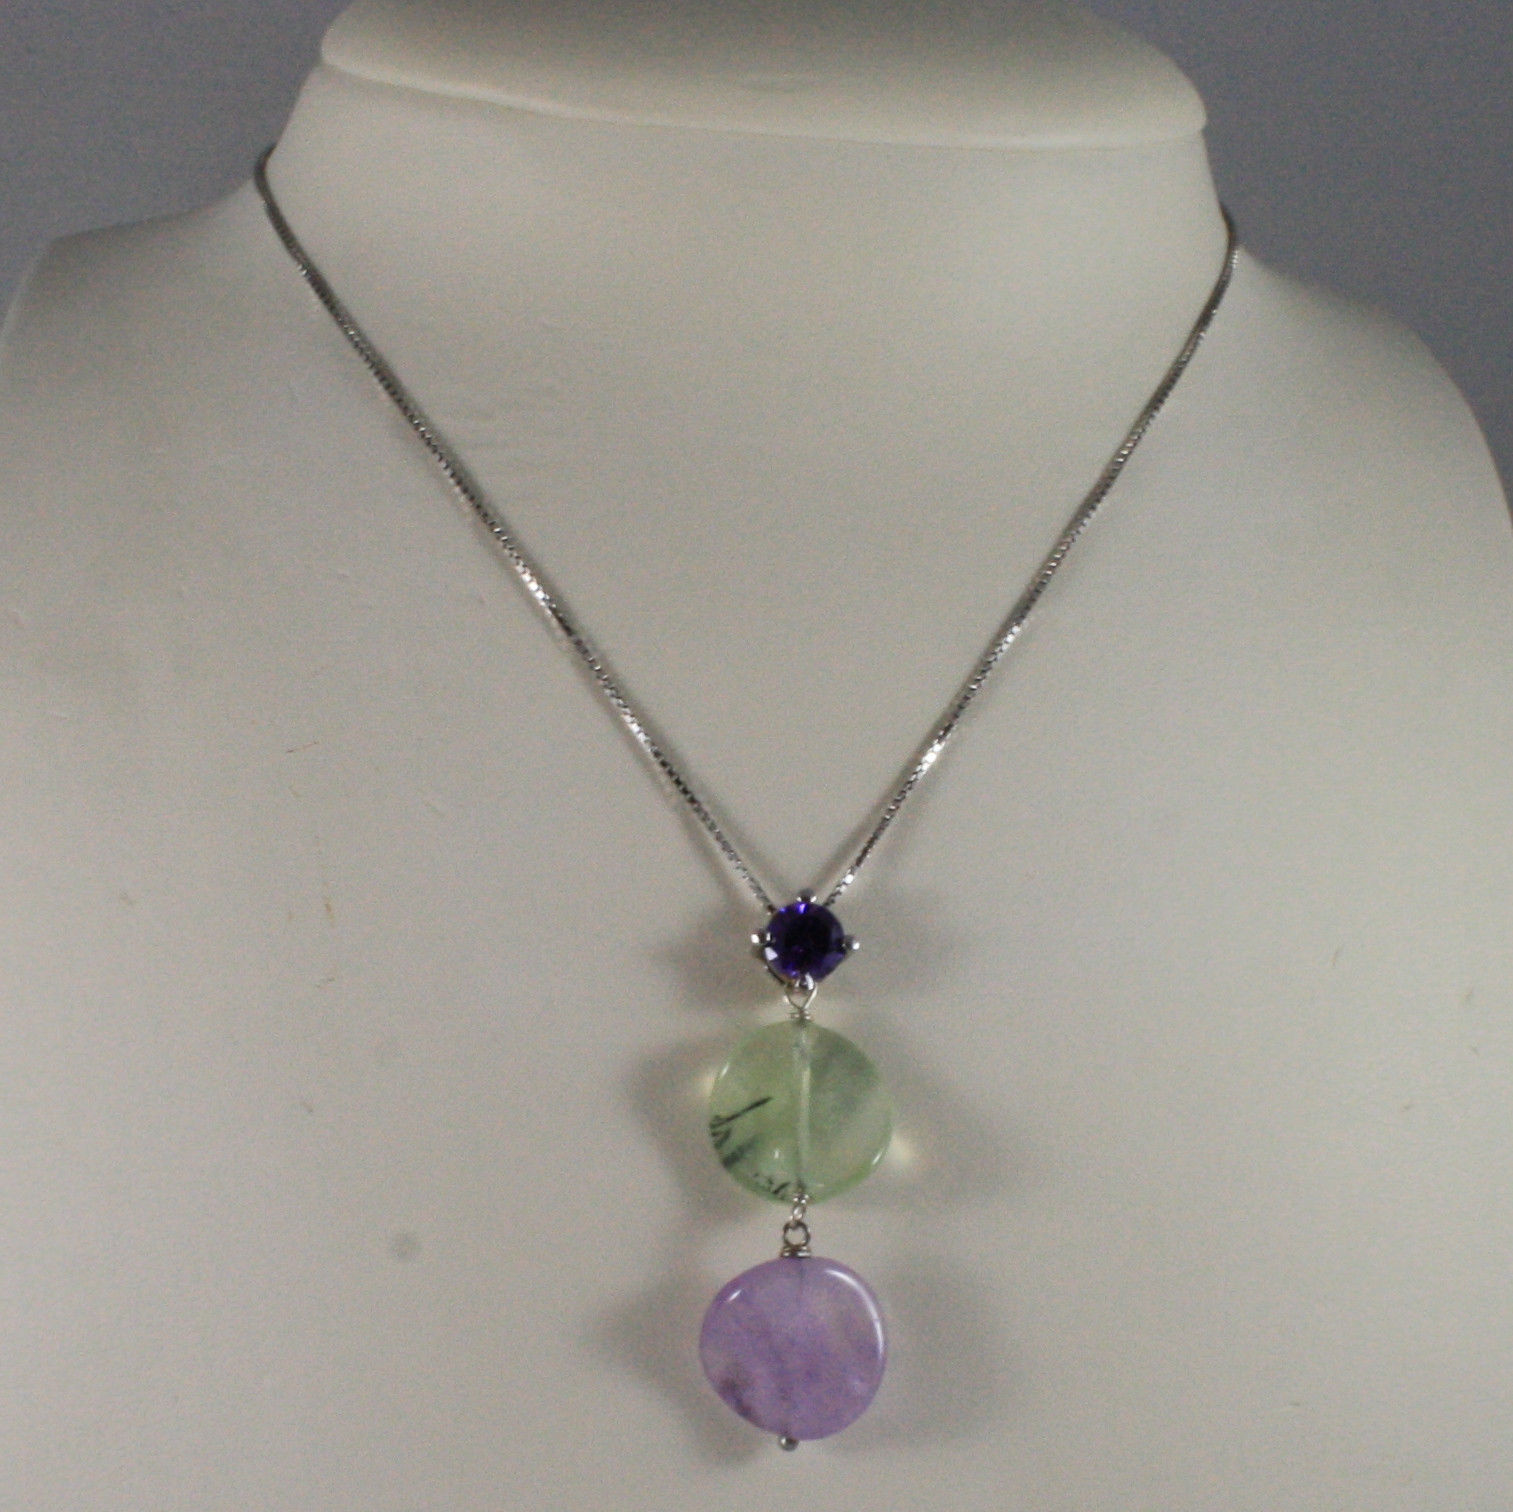 .925 SILVER RHODIUM NECKLACE WITH PURPLE CRYSTALS, GREEN QUARTZ AND AMETHYST